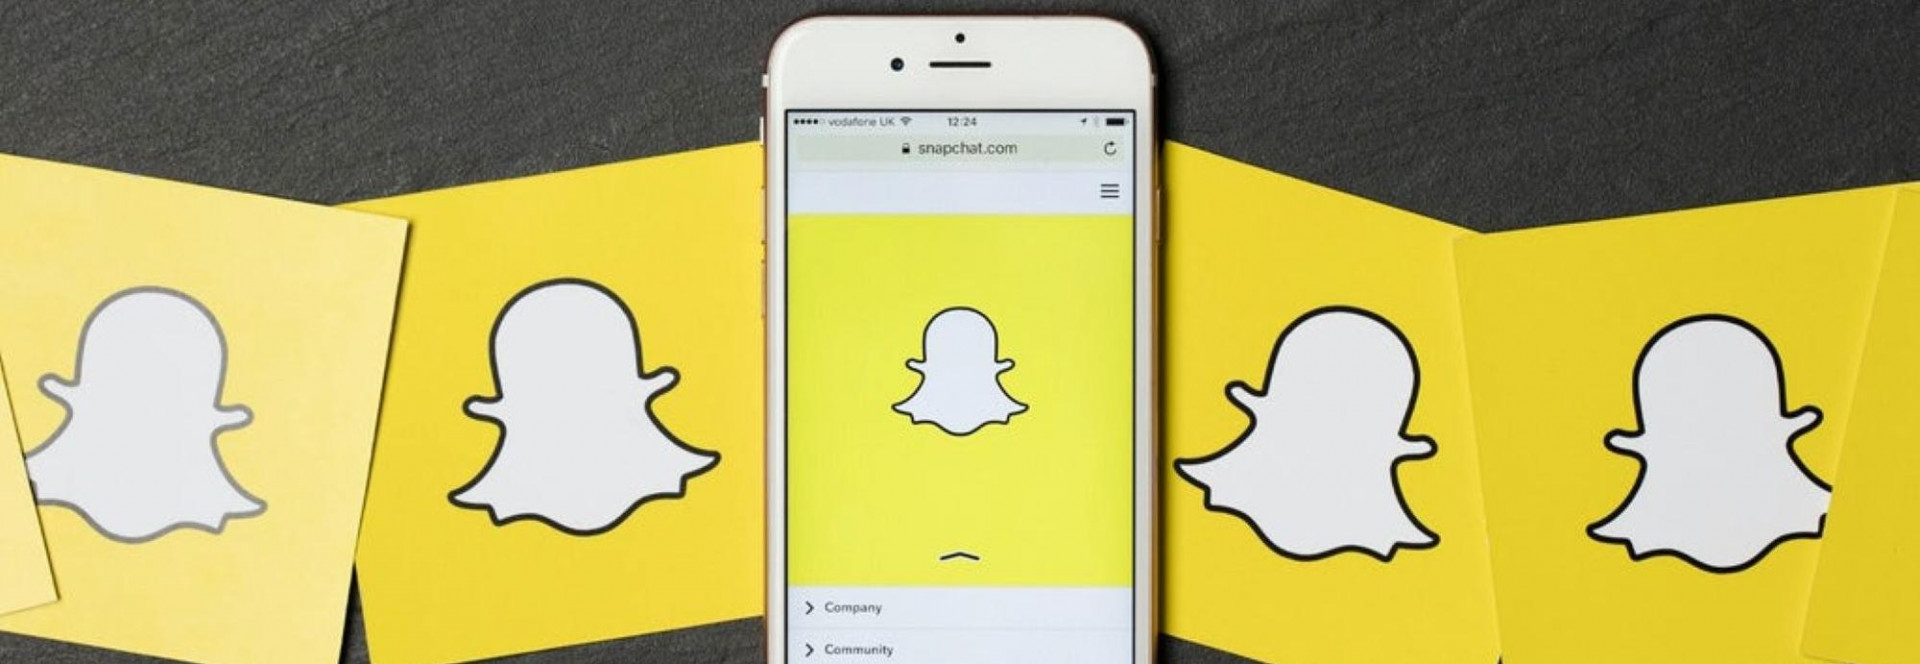 Snapchat Improves on E-Commerce With Fit Analytics Acquisition